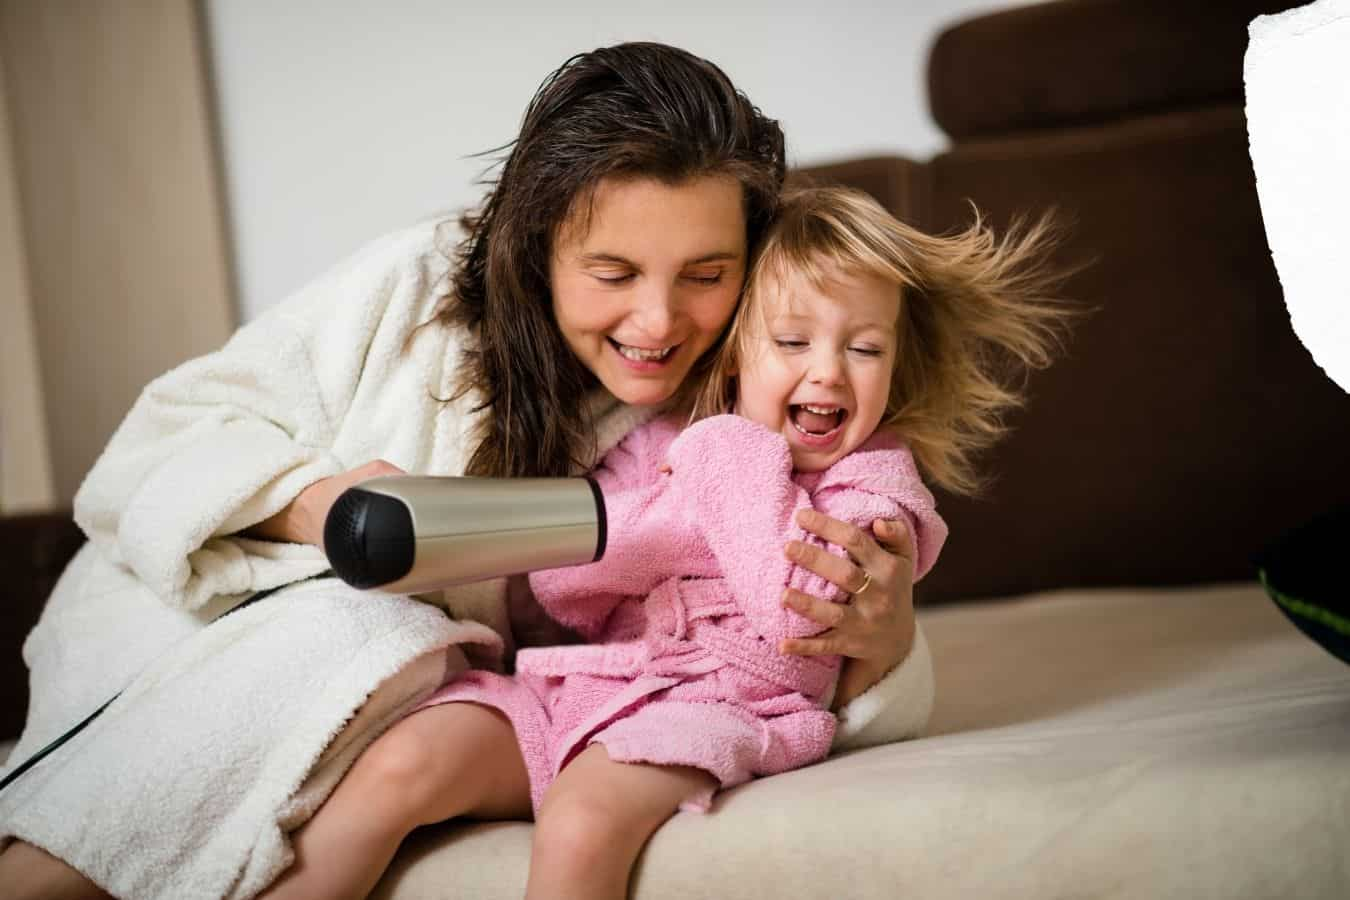 The Best Age To Use A Hairdryer On Your Child